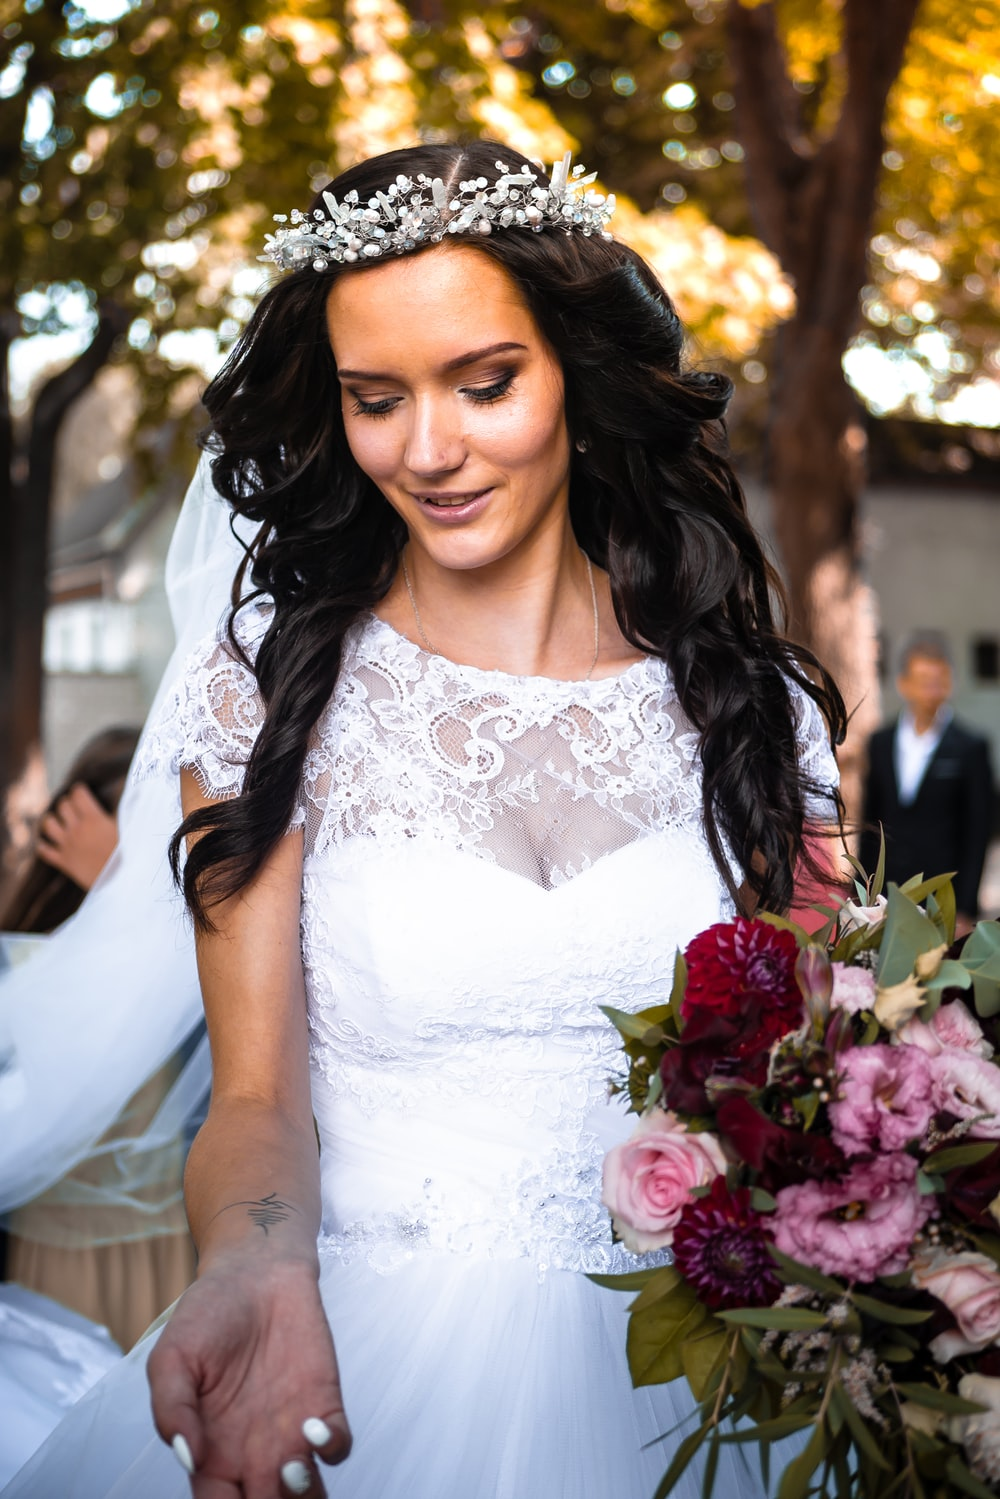 woman wearing white floral wedding dress holding flower bouquet outdoor during daytime \